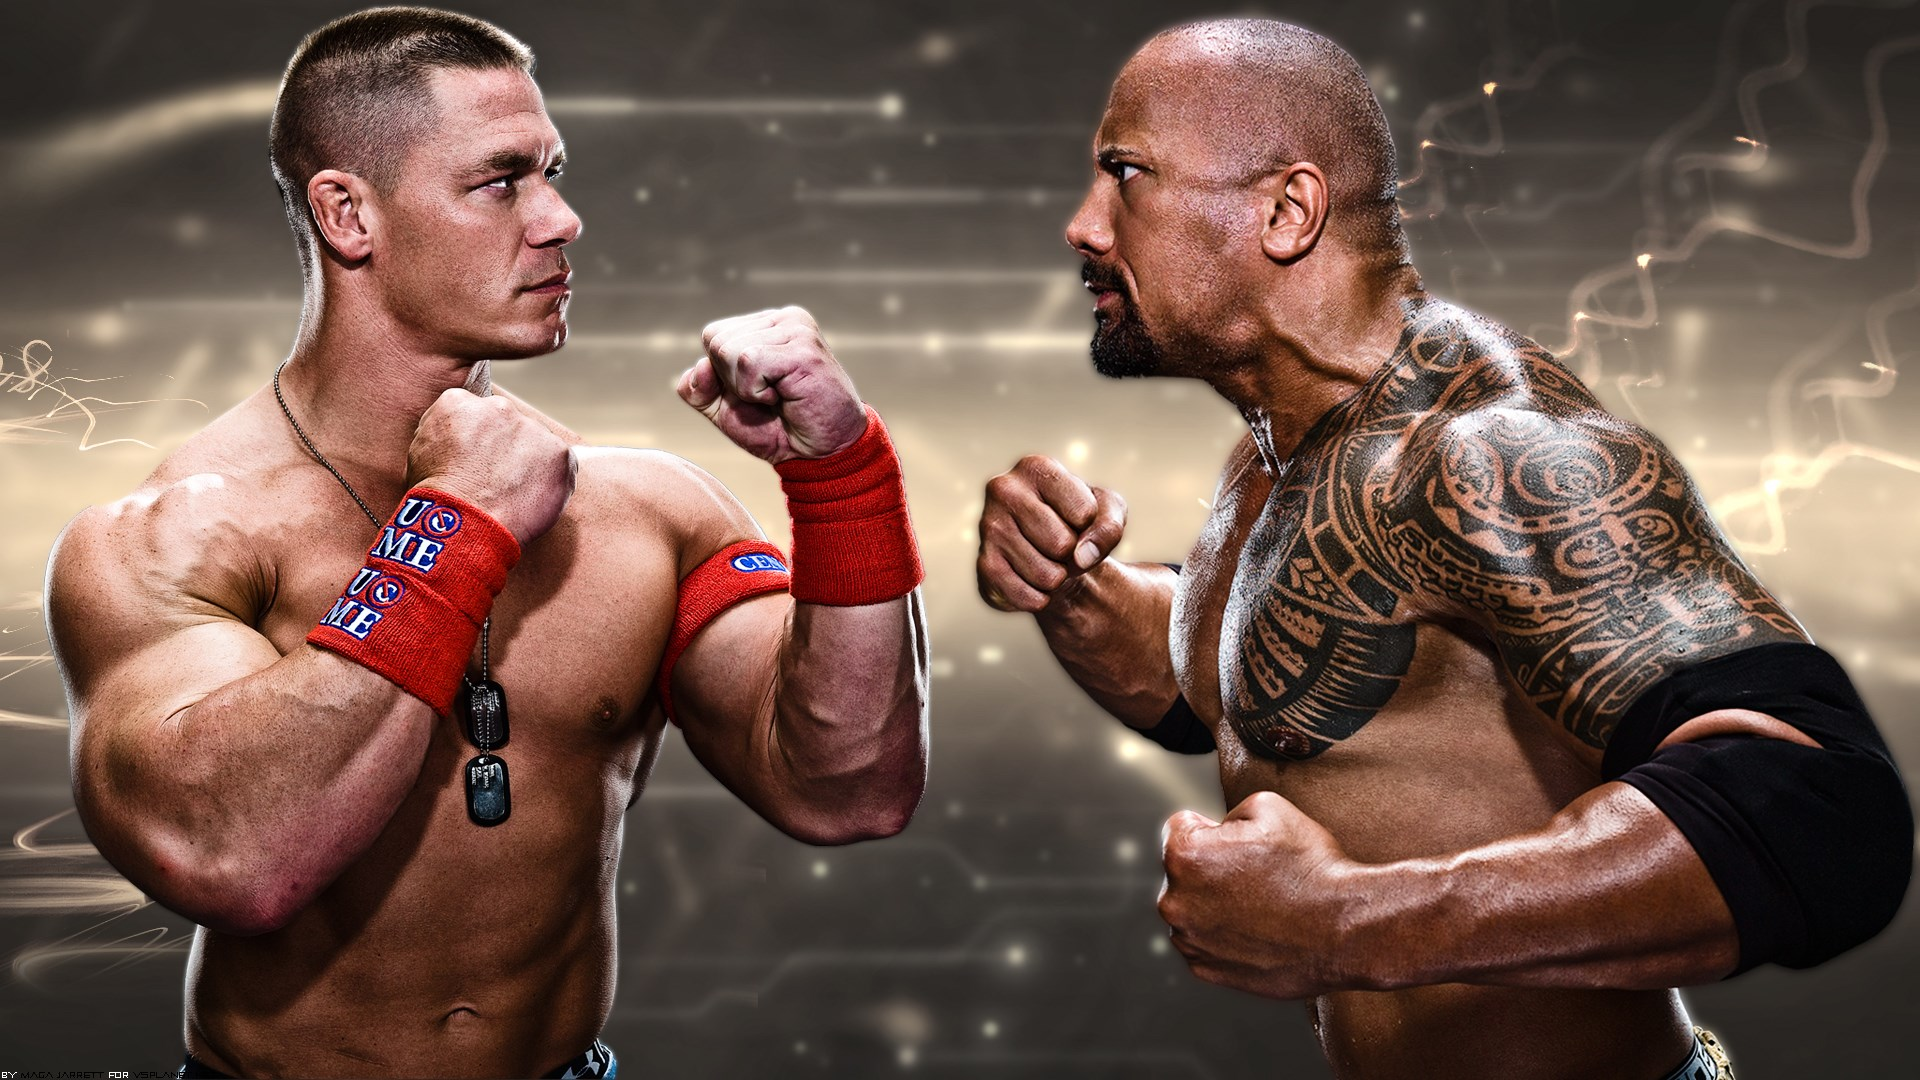 John Cena Vs The Rock Wrestlemania 11503 Wallpaper Wallpaper hd 1920x1080